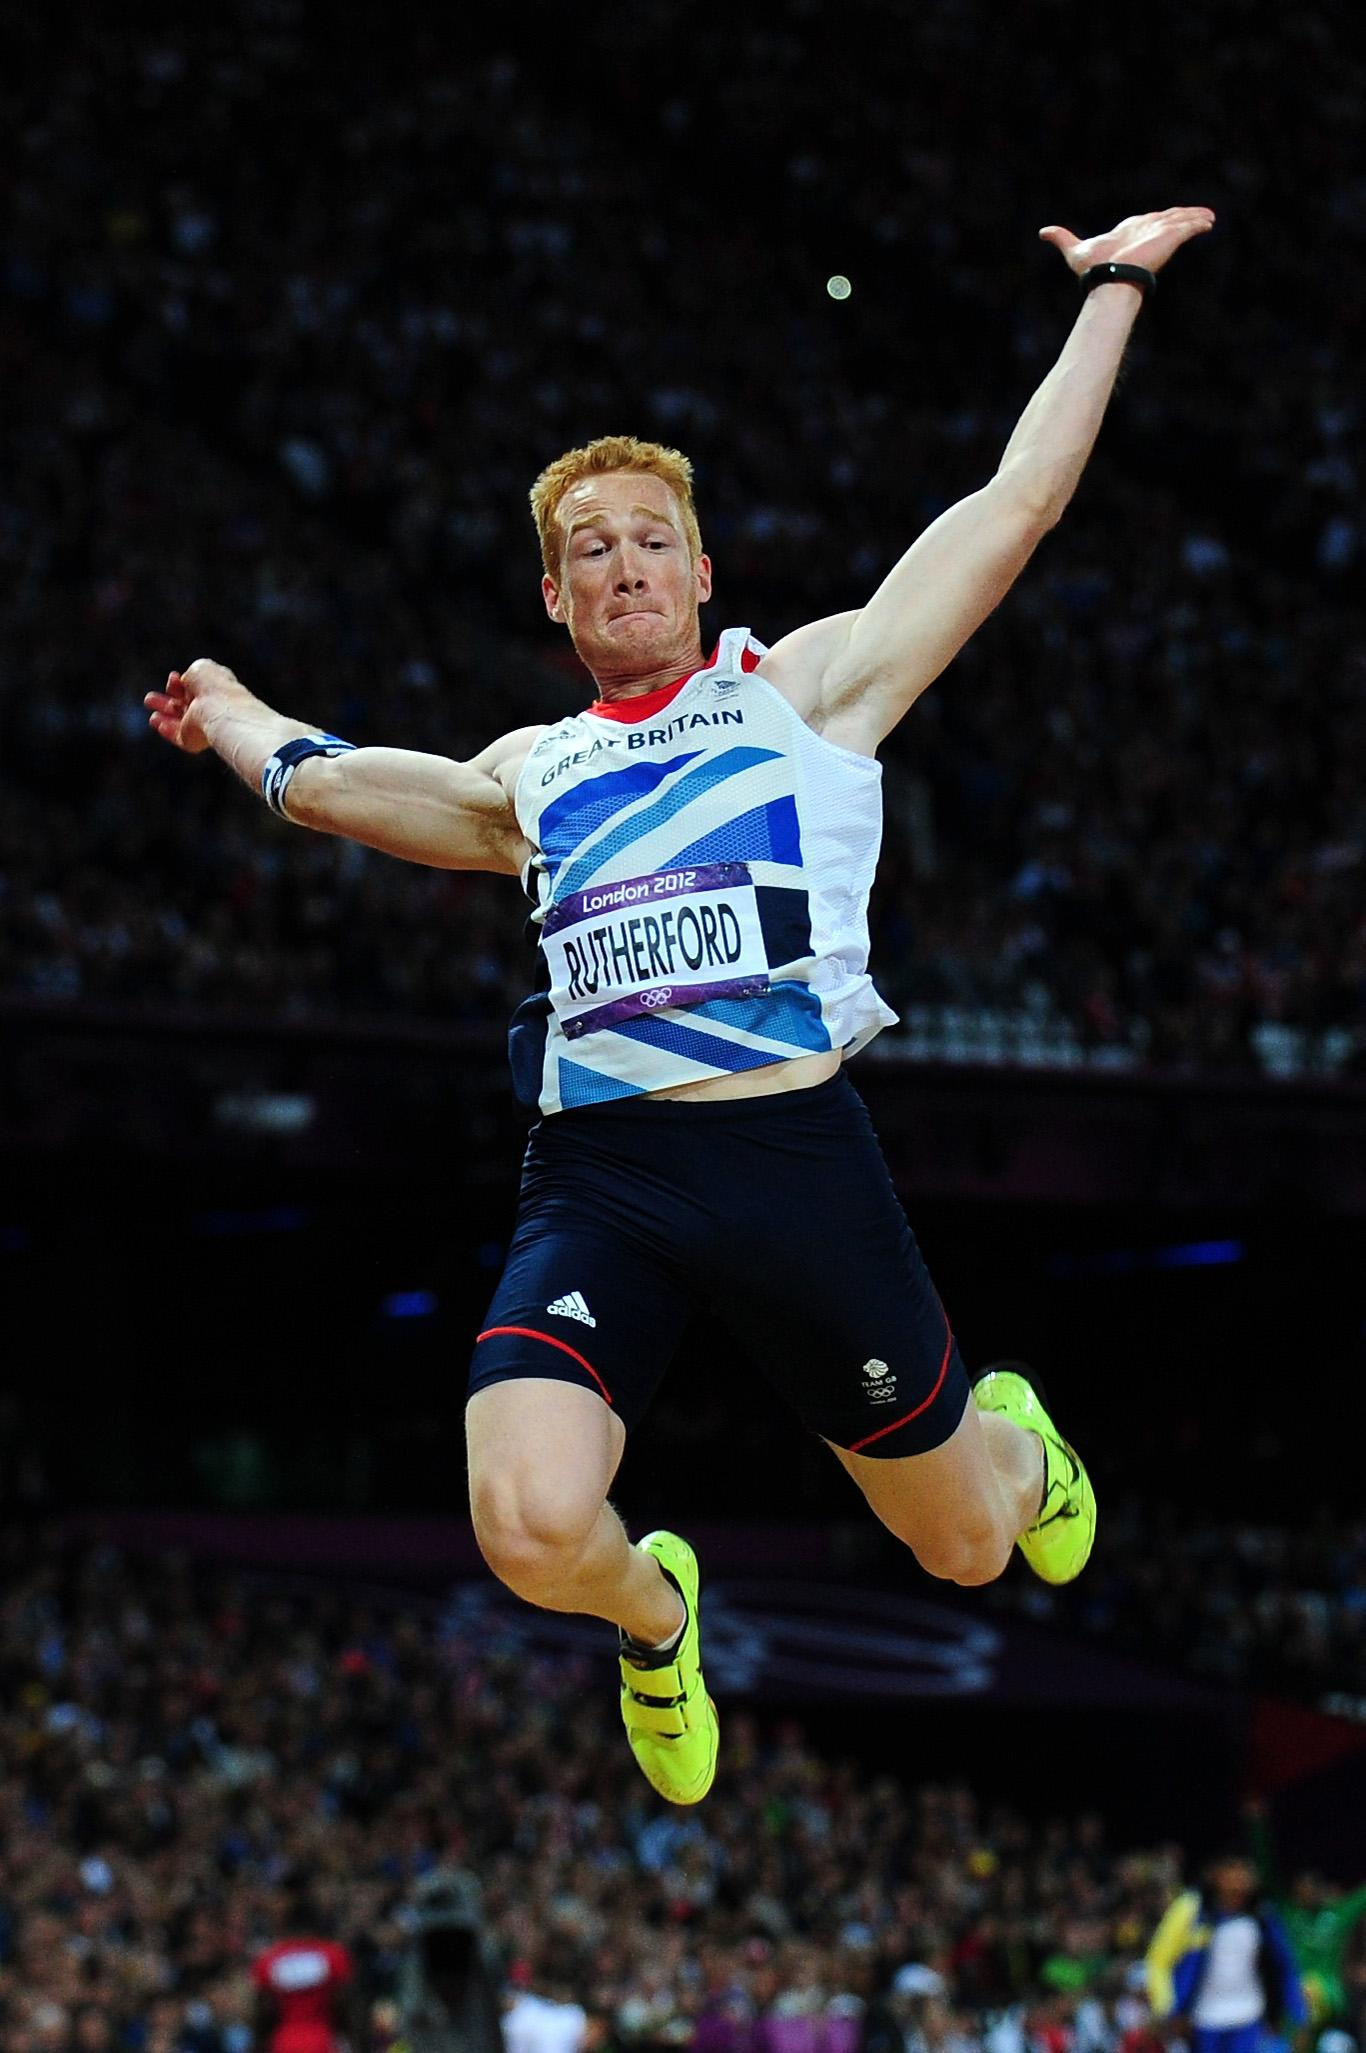 A move into cycling will be a leap into the unkown for Greg Rutherford